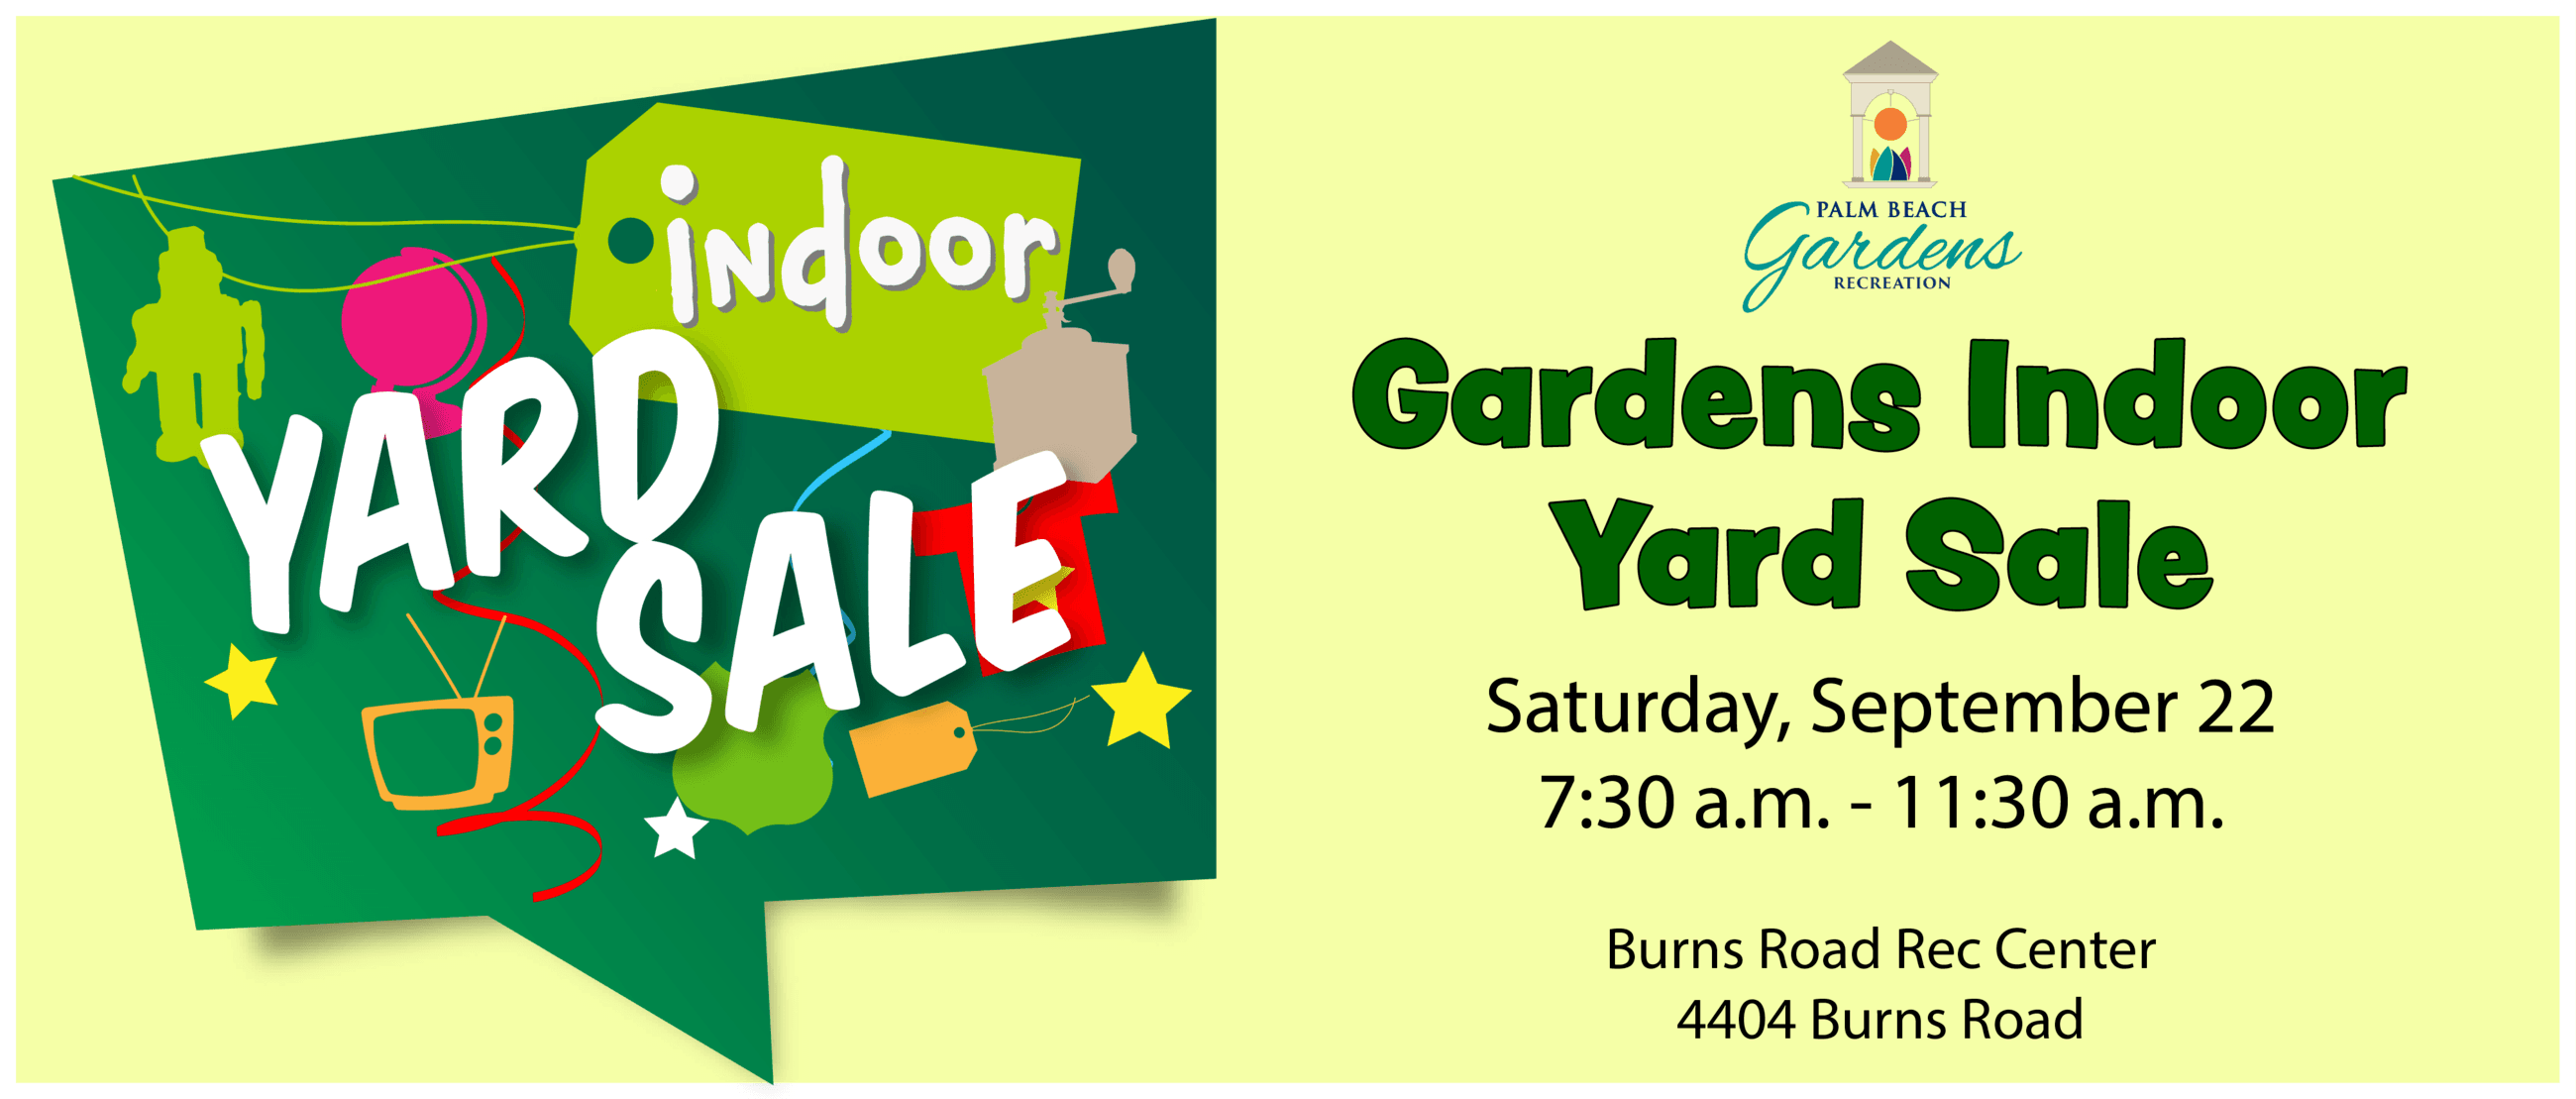 graphic link reading gardens indoor yard sale Saturday, September 22 7:30 a.m. to 11:30 a.m.